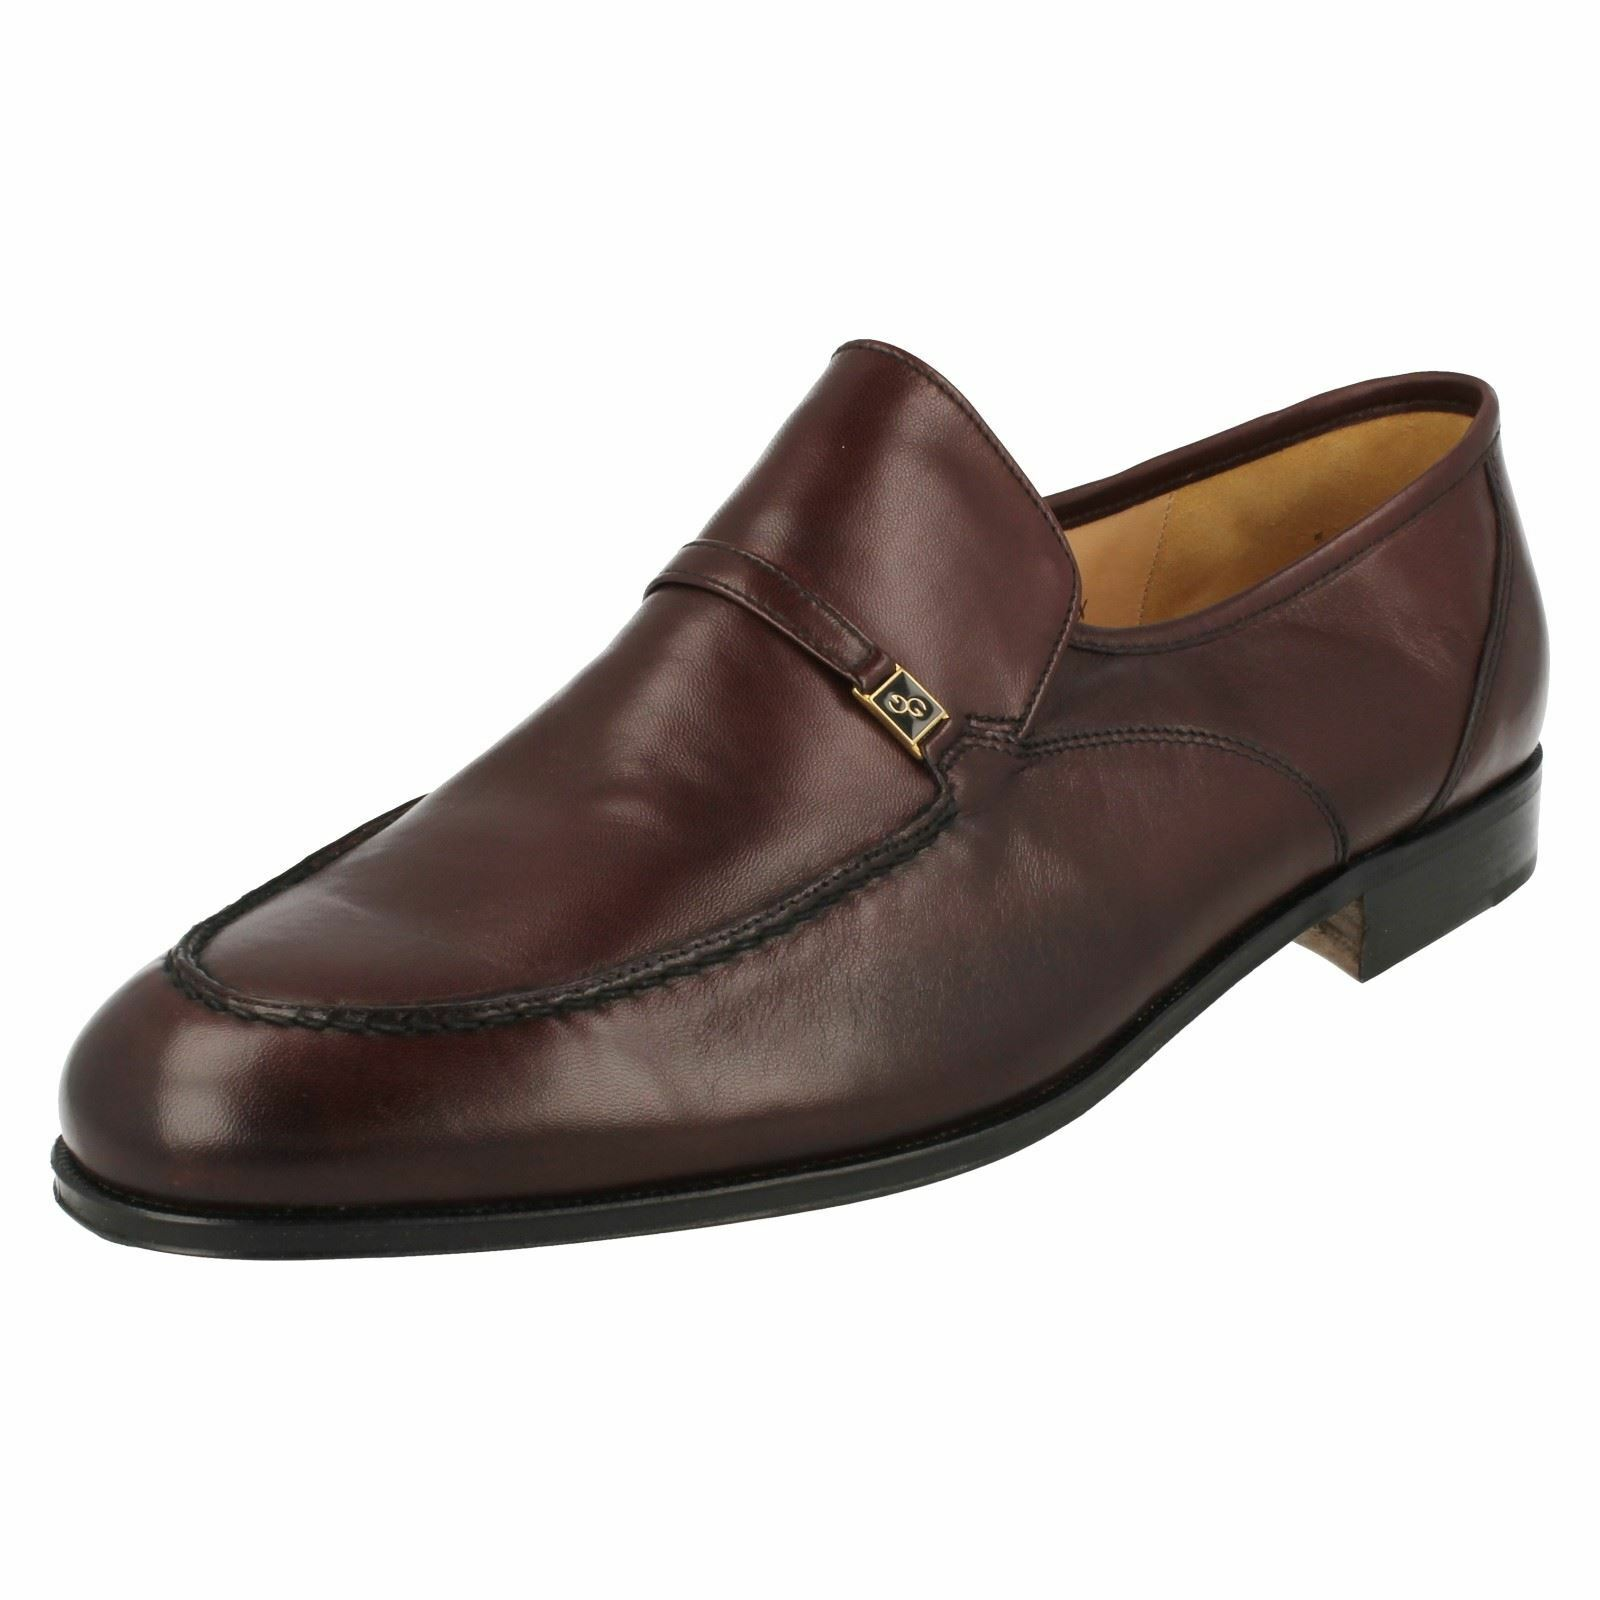 Mens Grenson Moccasin shoes 'Monza' 'Monza' 'Monza' 94abcd